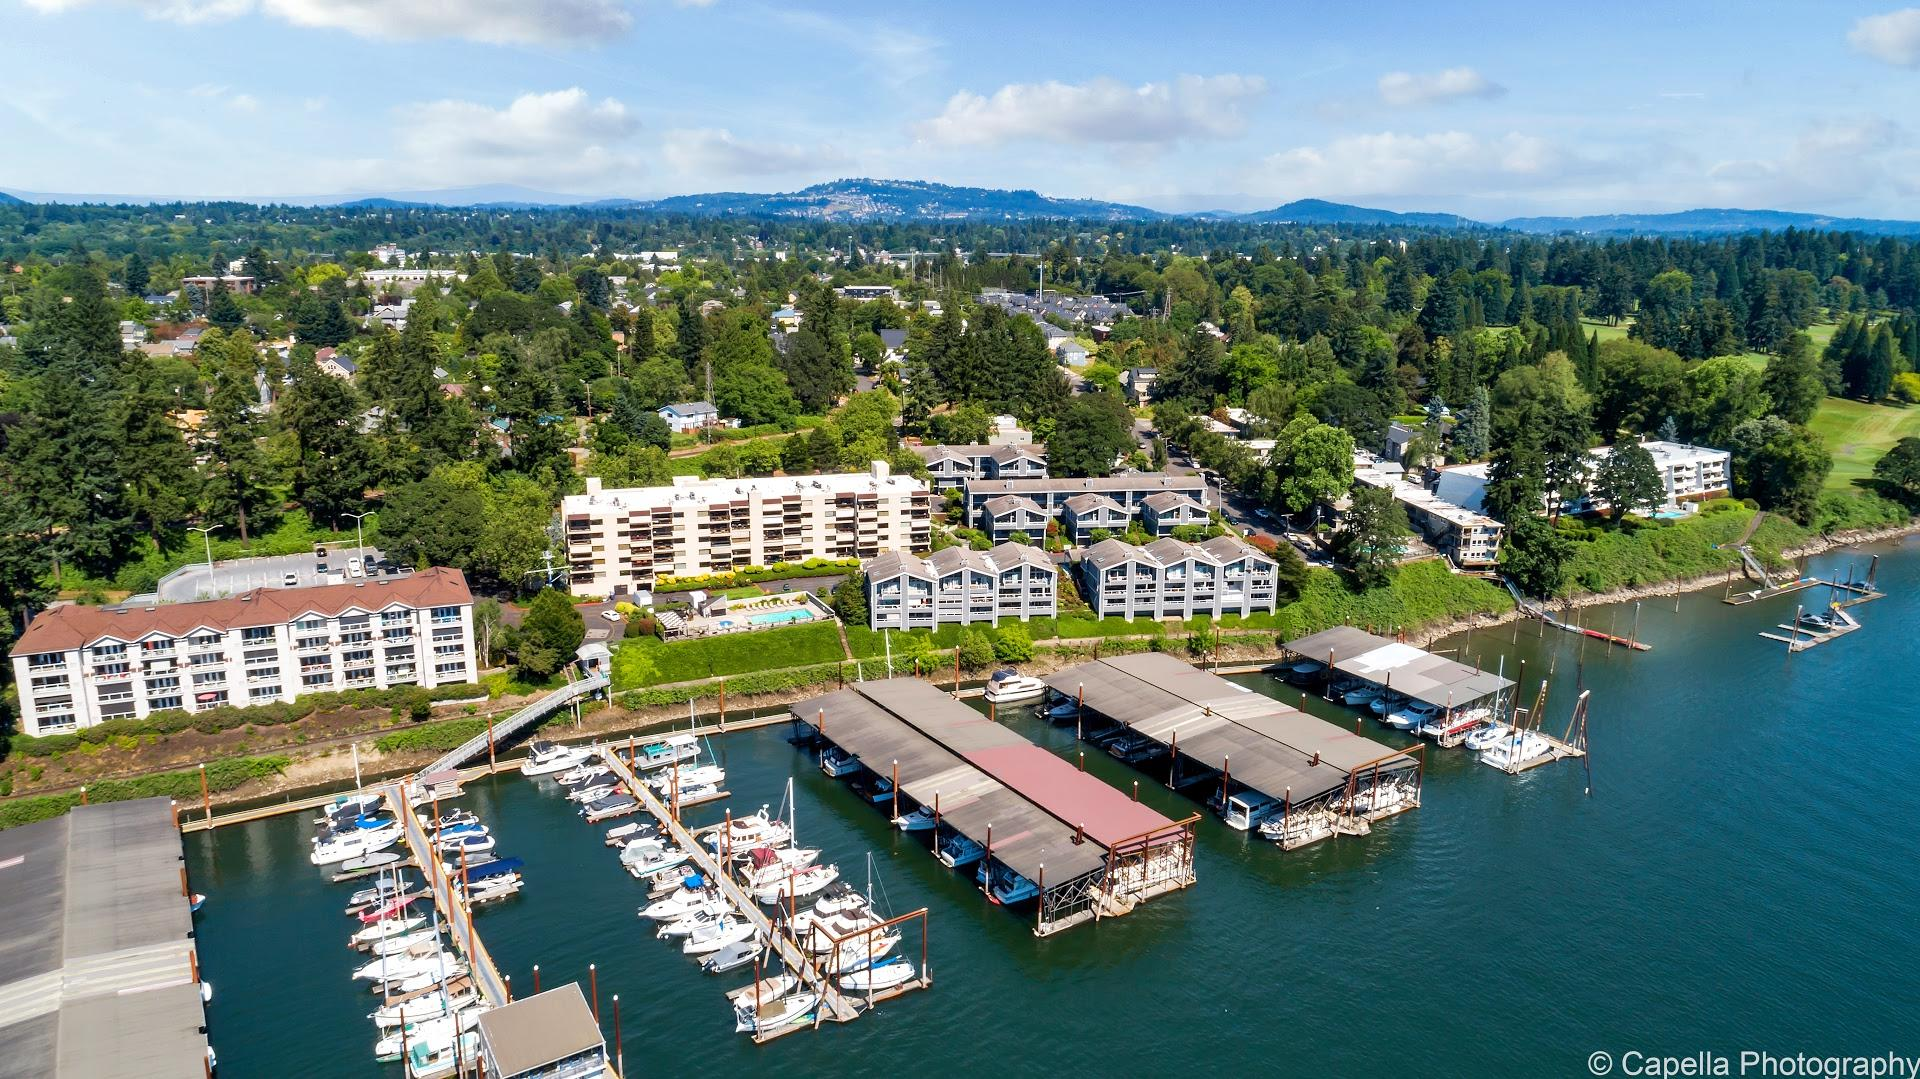 Aerial view of Waverly Landing condos (left), Waverly Yacht Club condos (center) and Quayside condos (right).